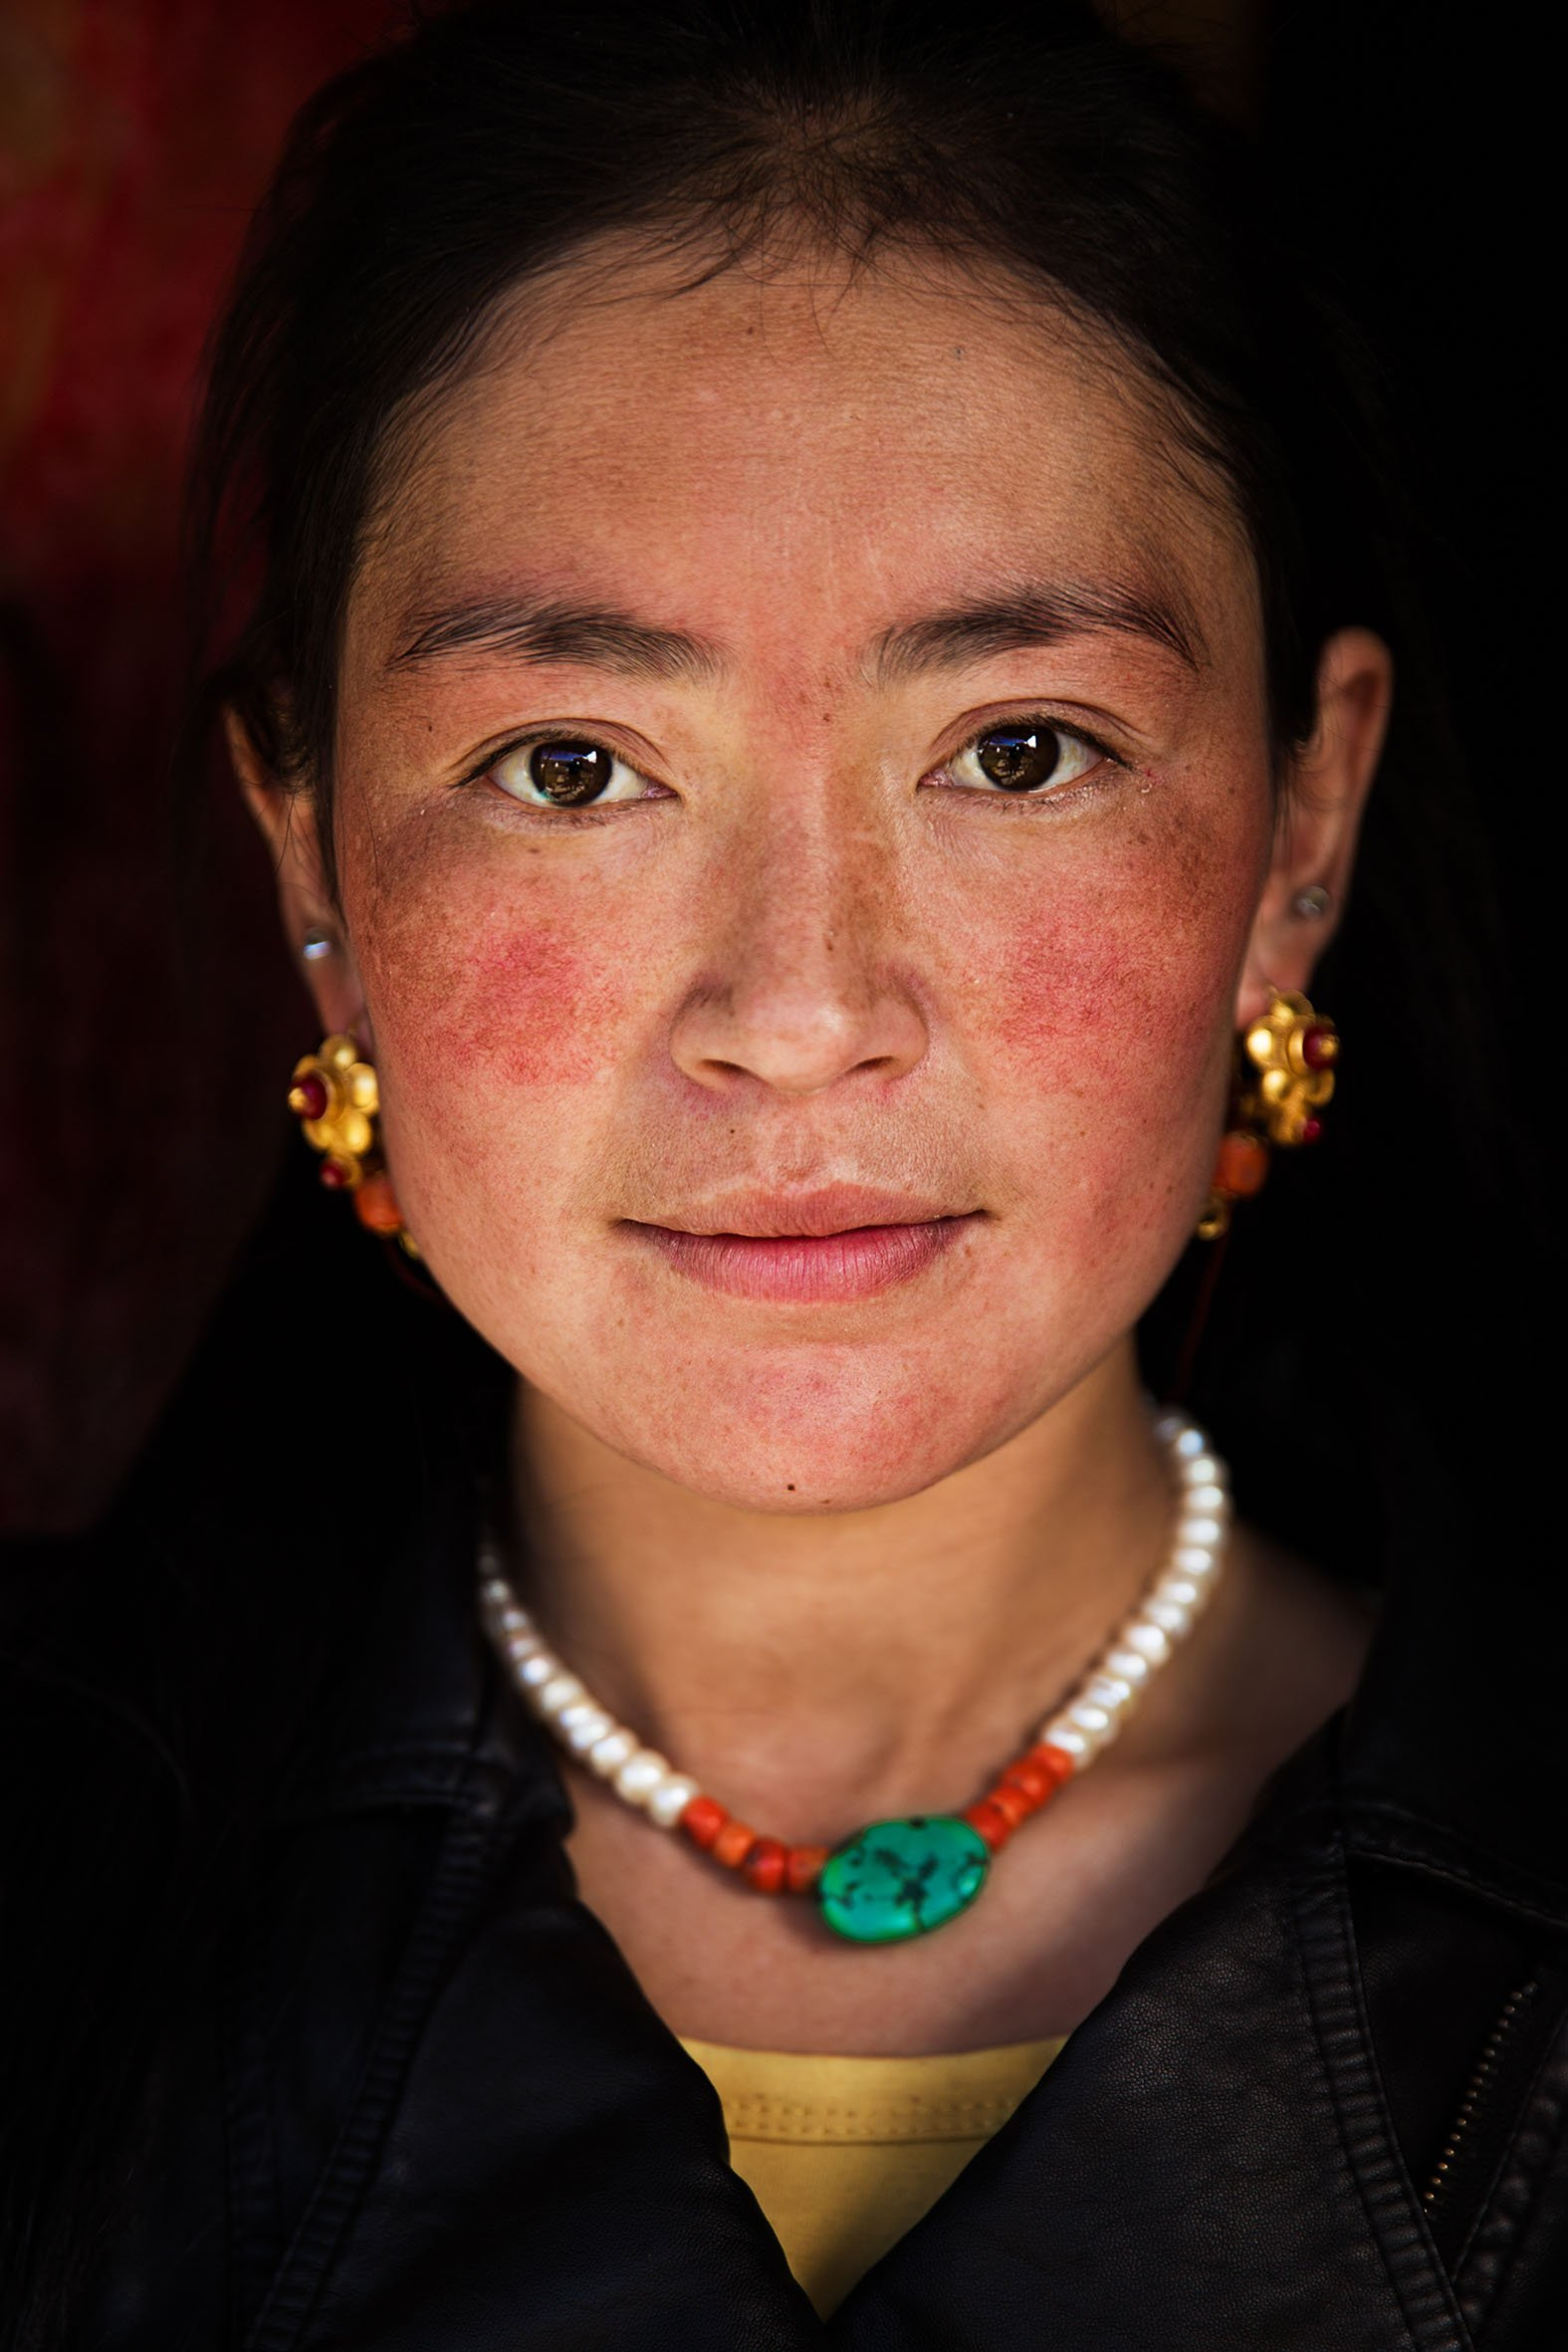 tibet woman portrait photography in color by mihaela noroc, the atlas of beauty series